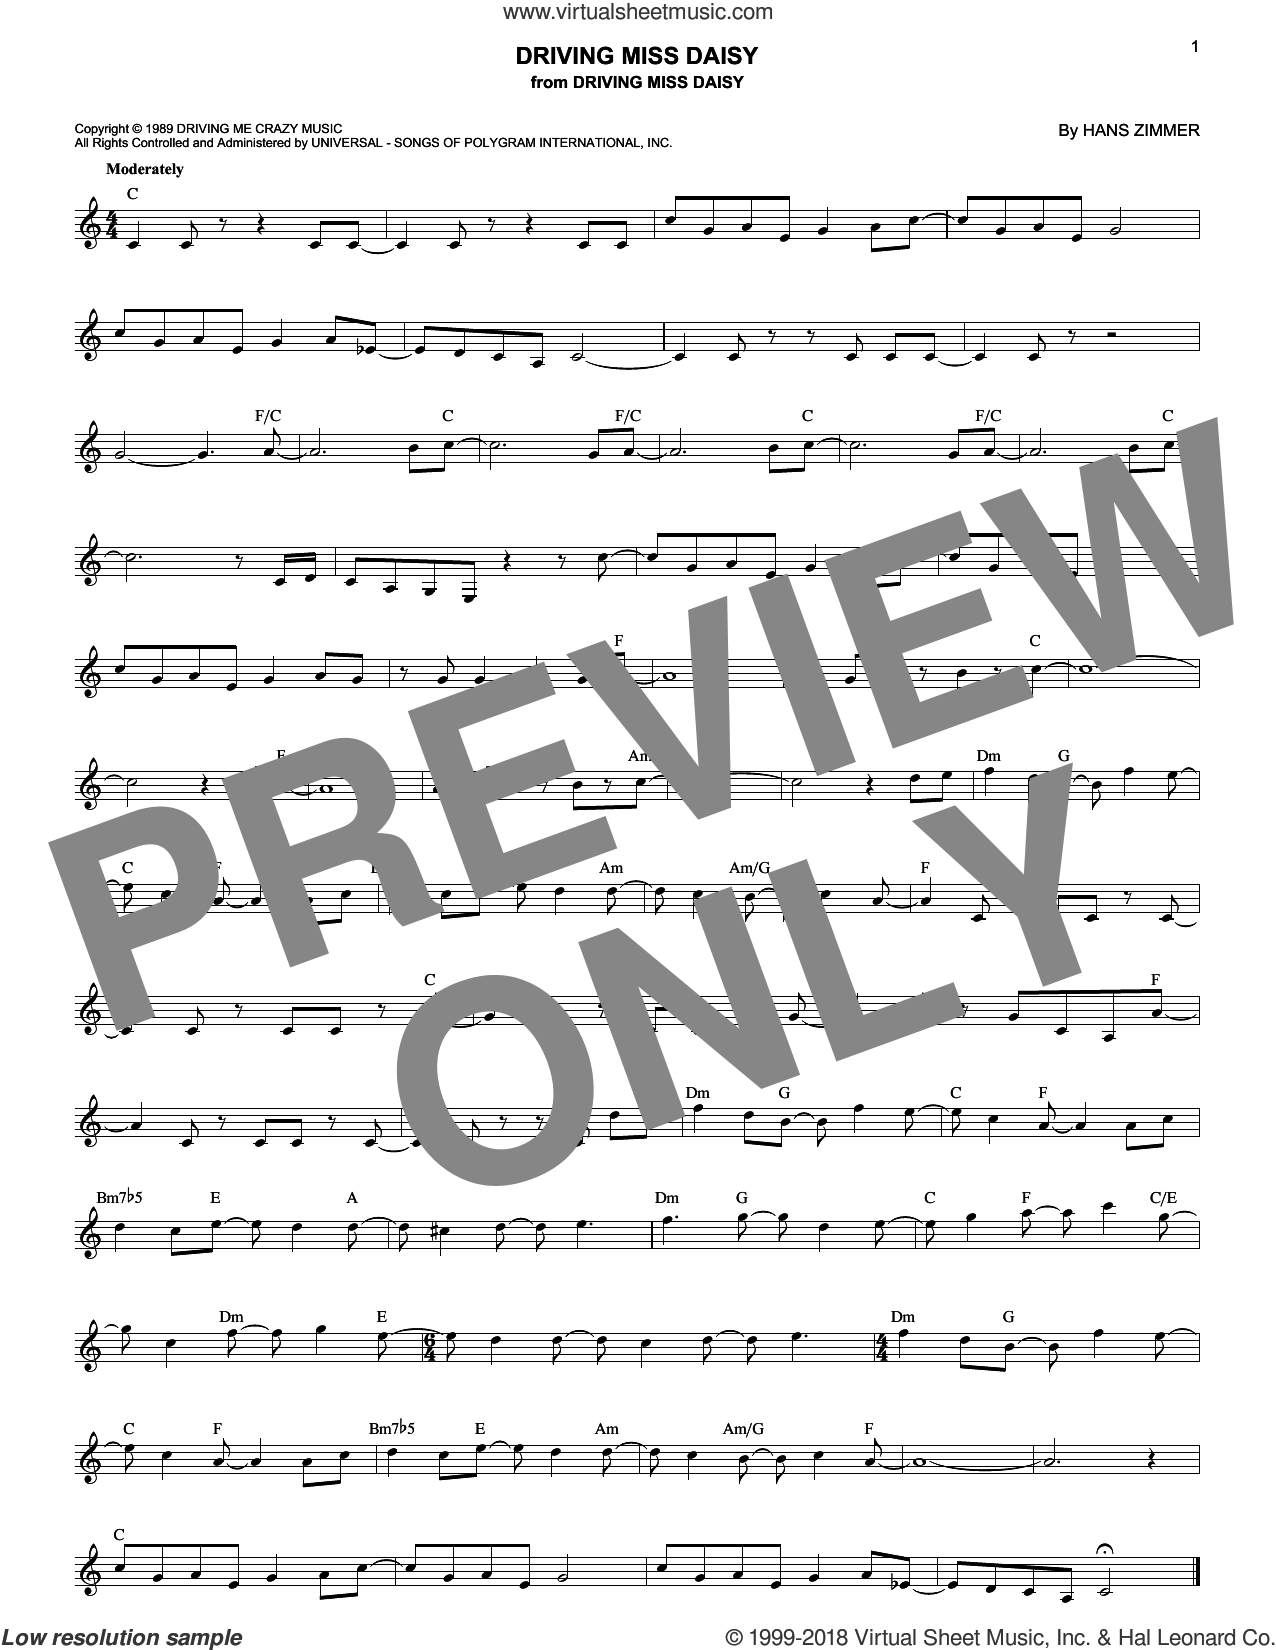 Driving Miss Daisy sheet music for voice and other instruments (fake book) by Hans Zimmer